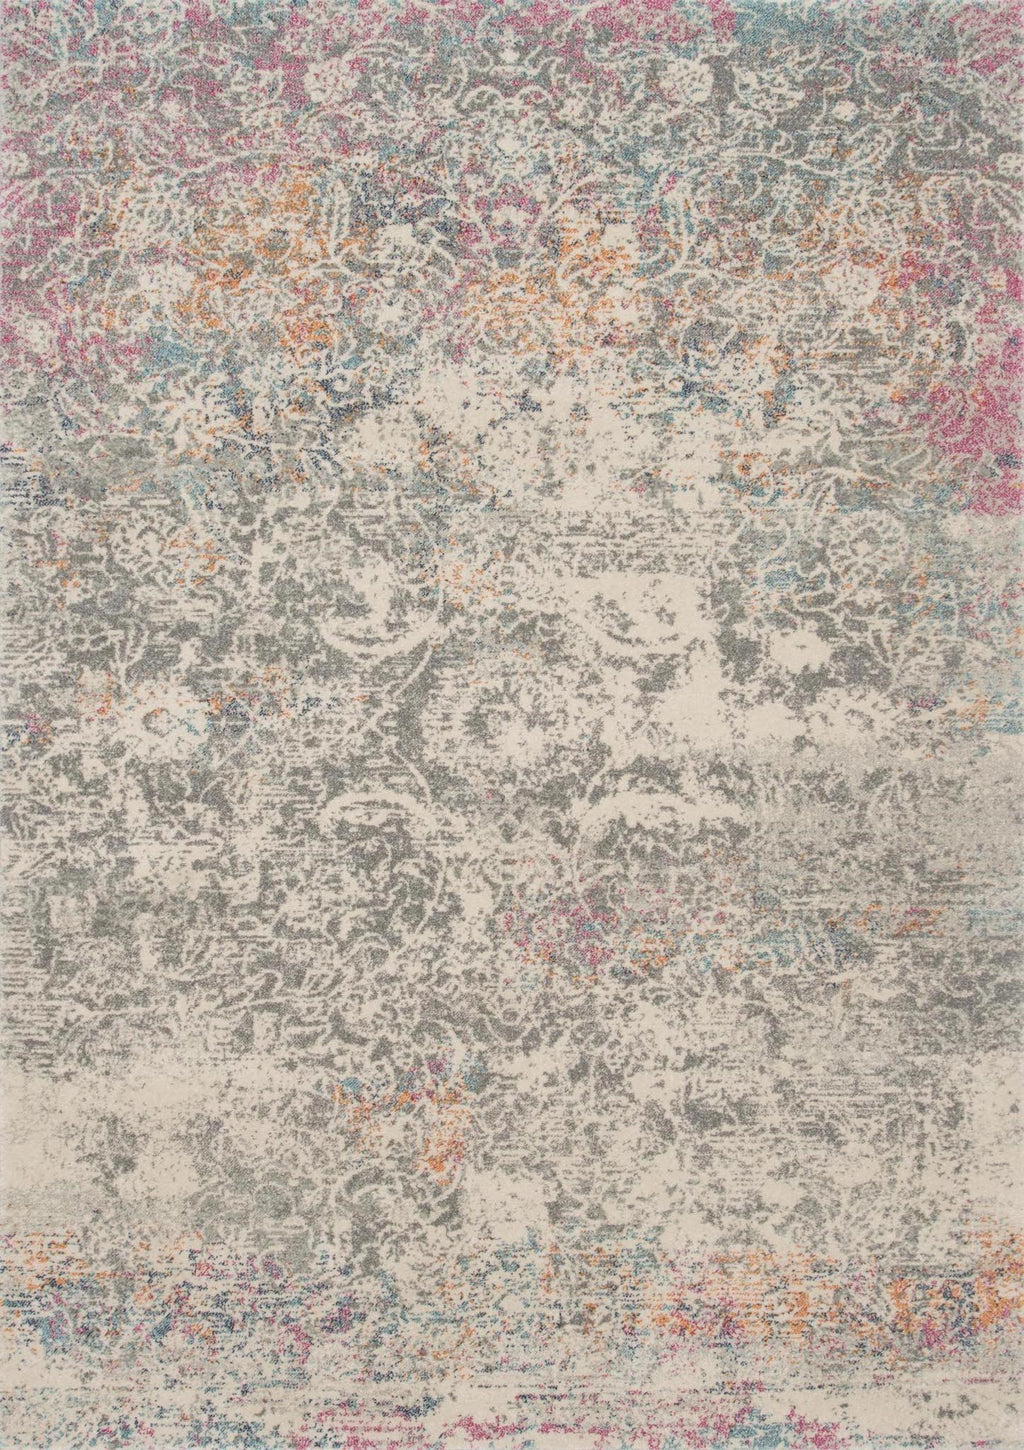 ZEHLA Collection Rug  in  GREY / MULTI Gray Runner Power-Loomed Polypropylene